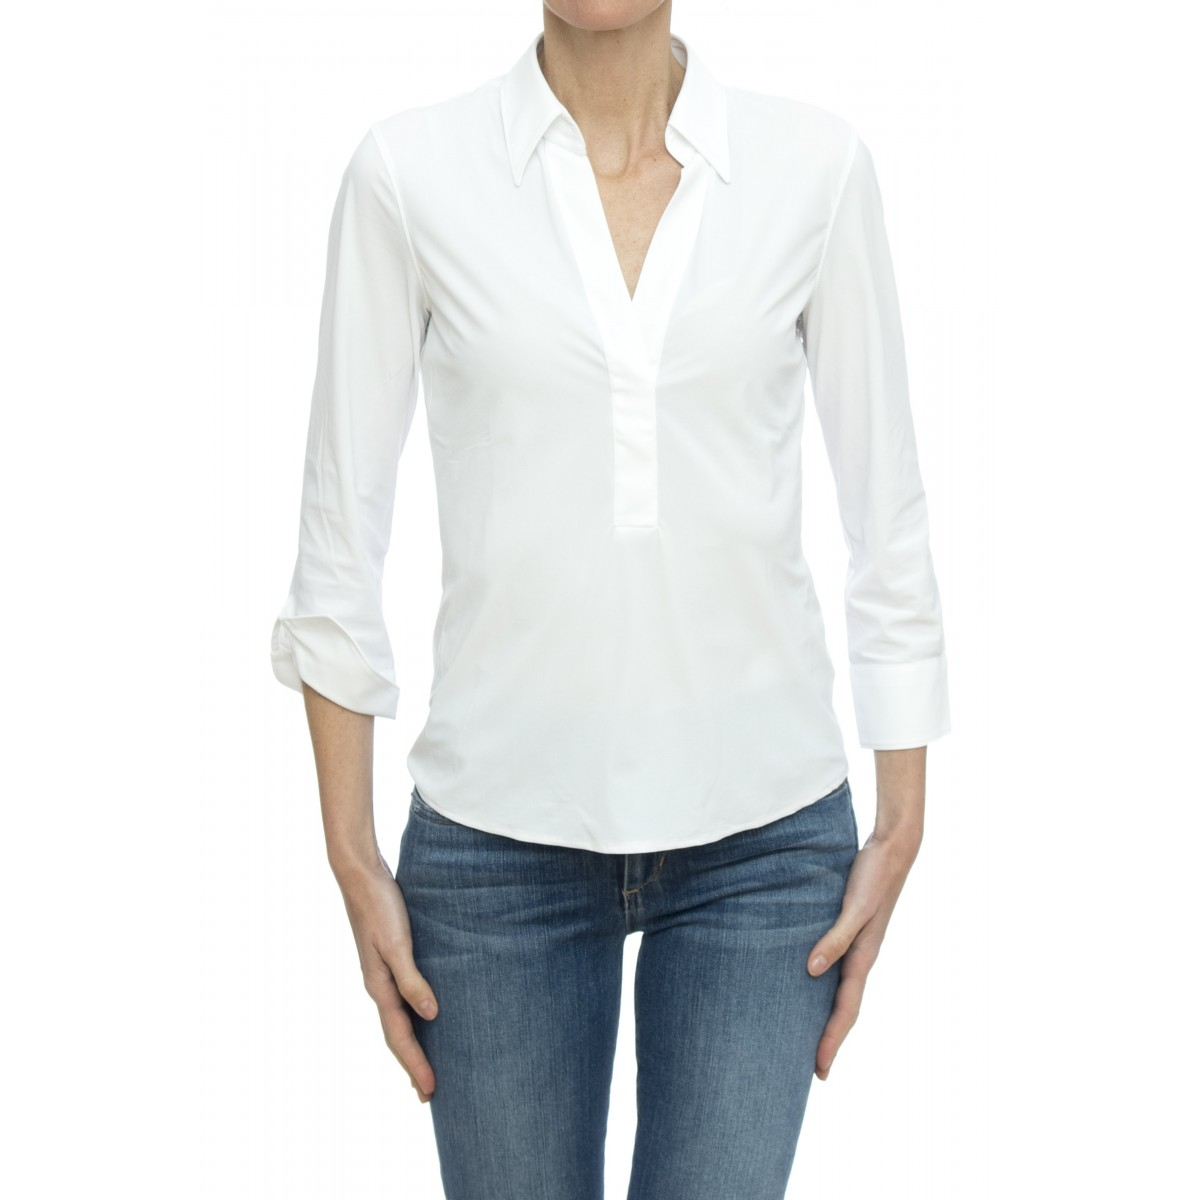 Camicia donna - 8au z9s skin like no stiro